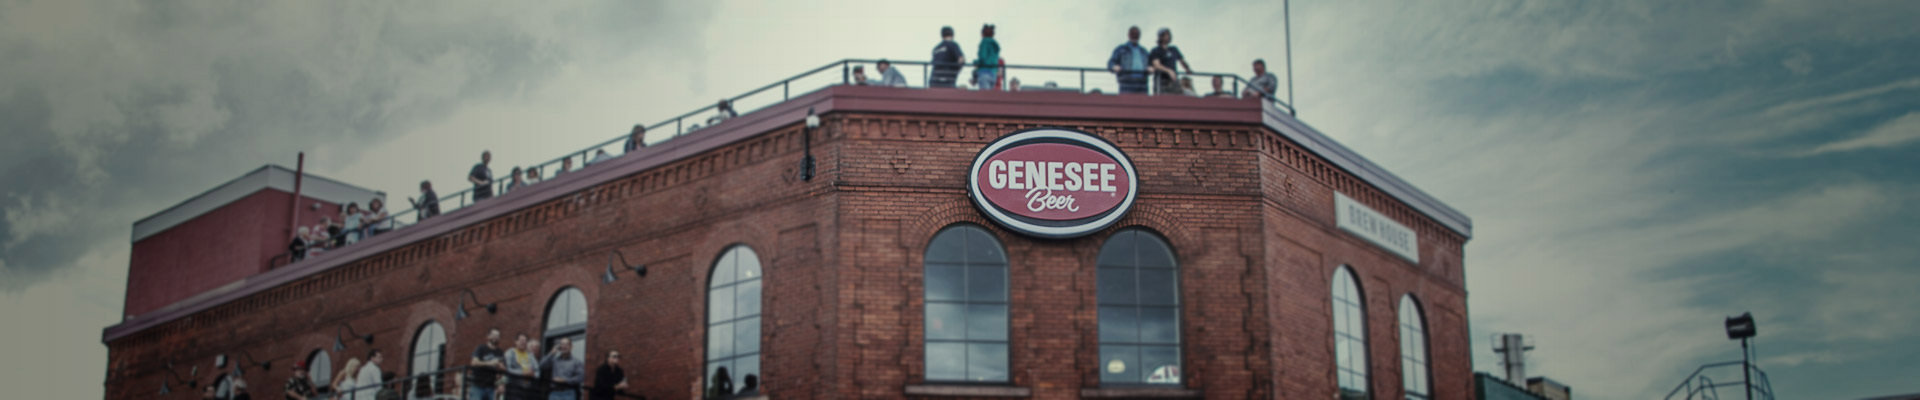 Genesee Brew House sign